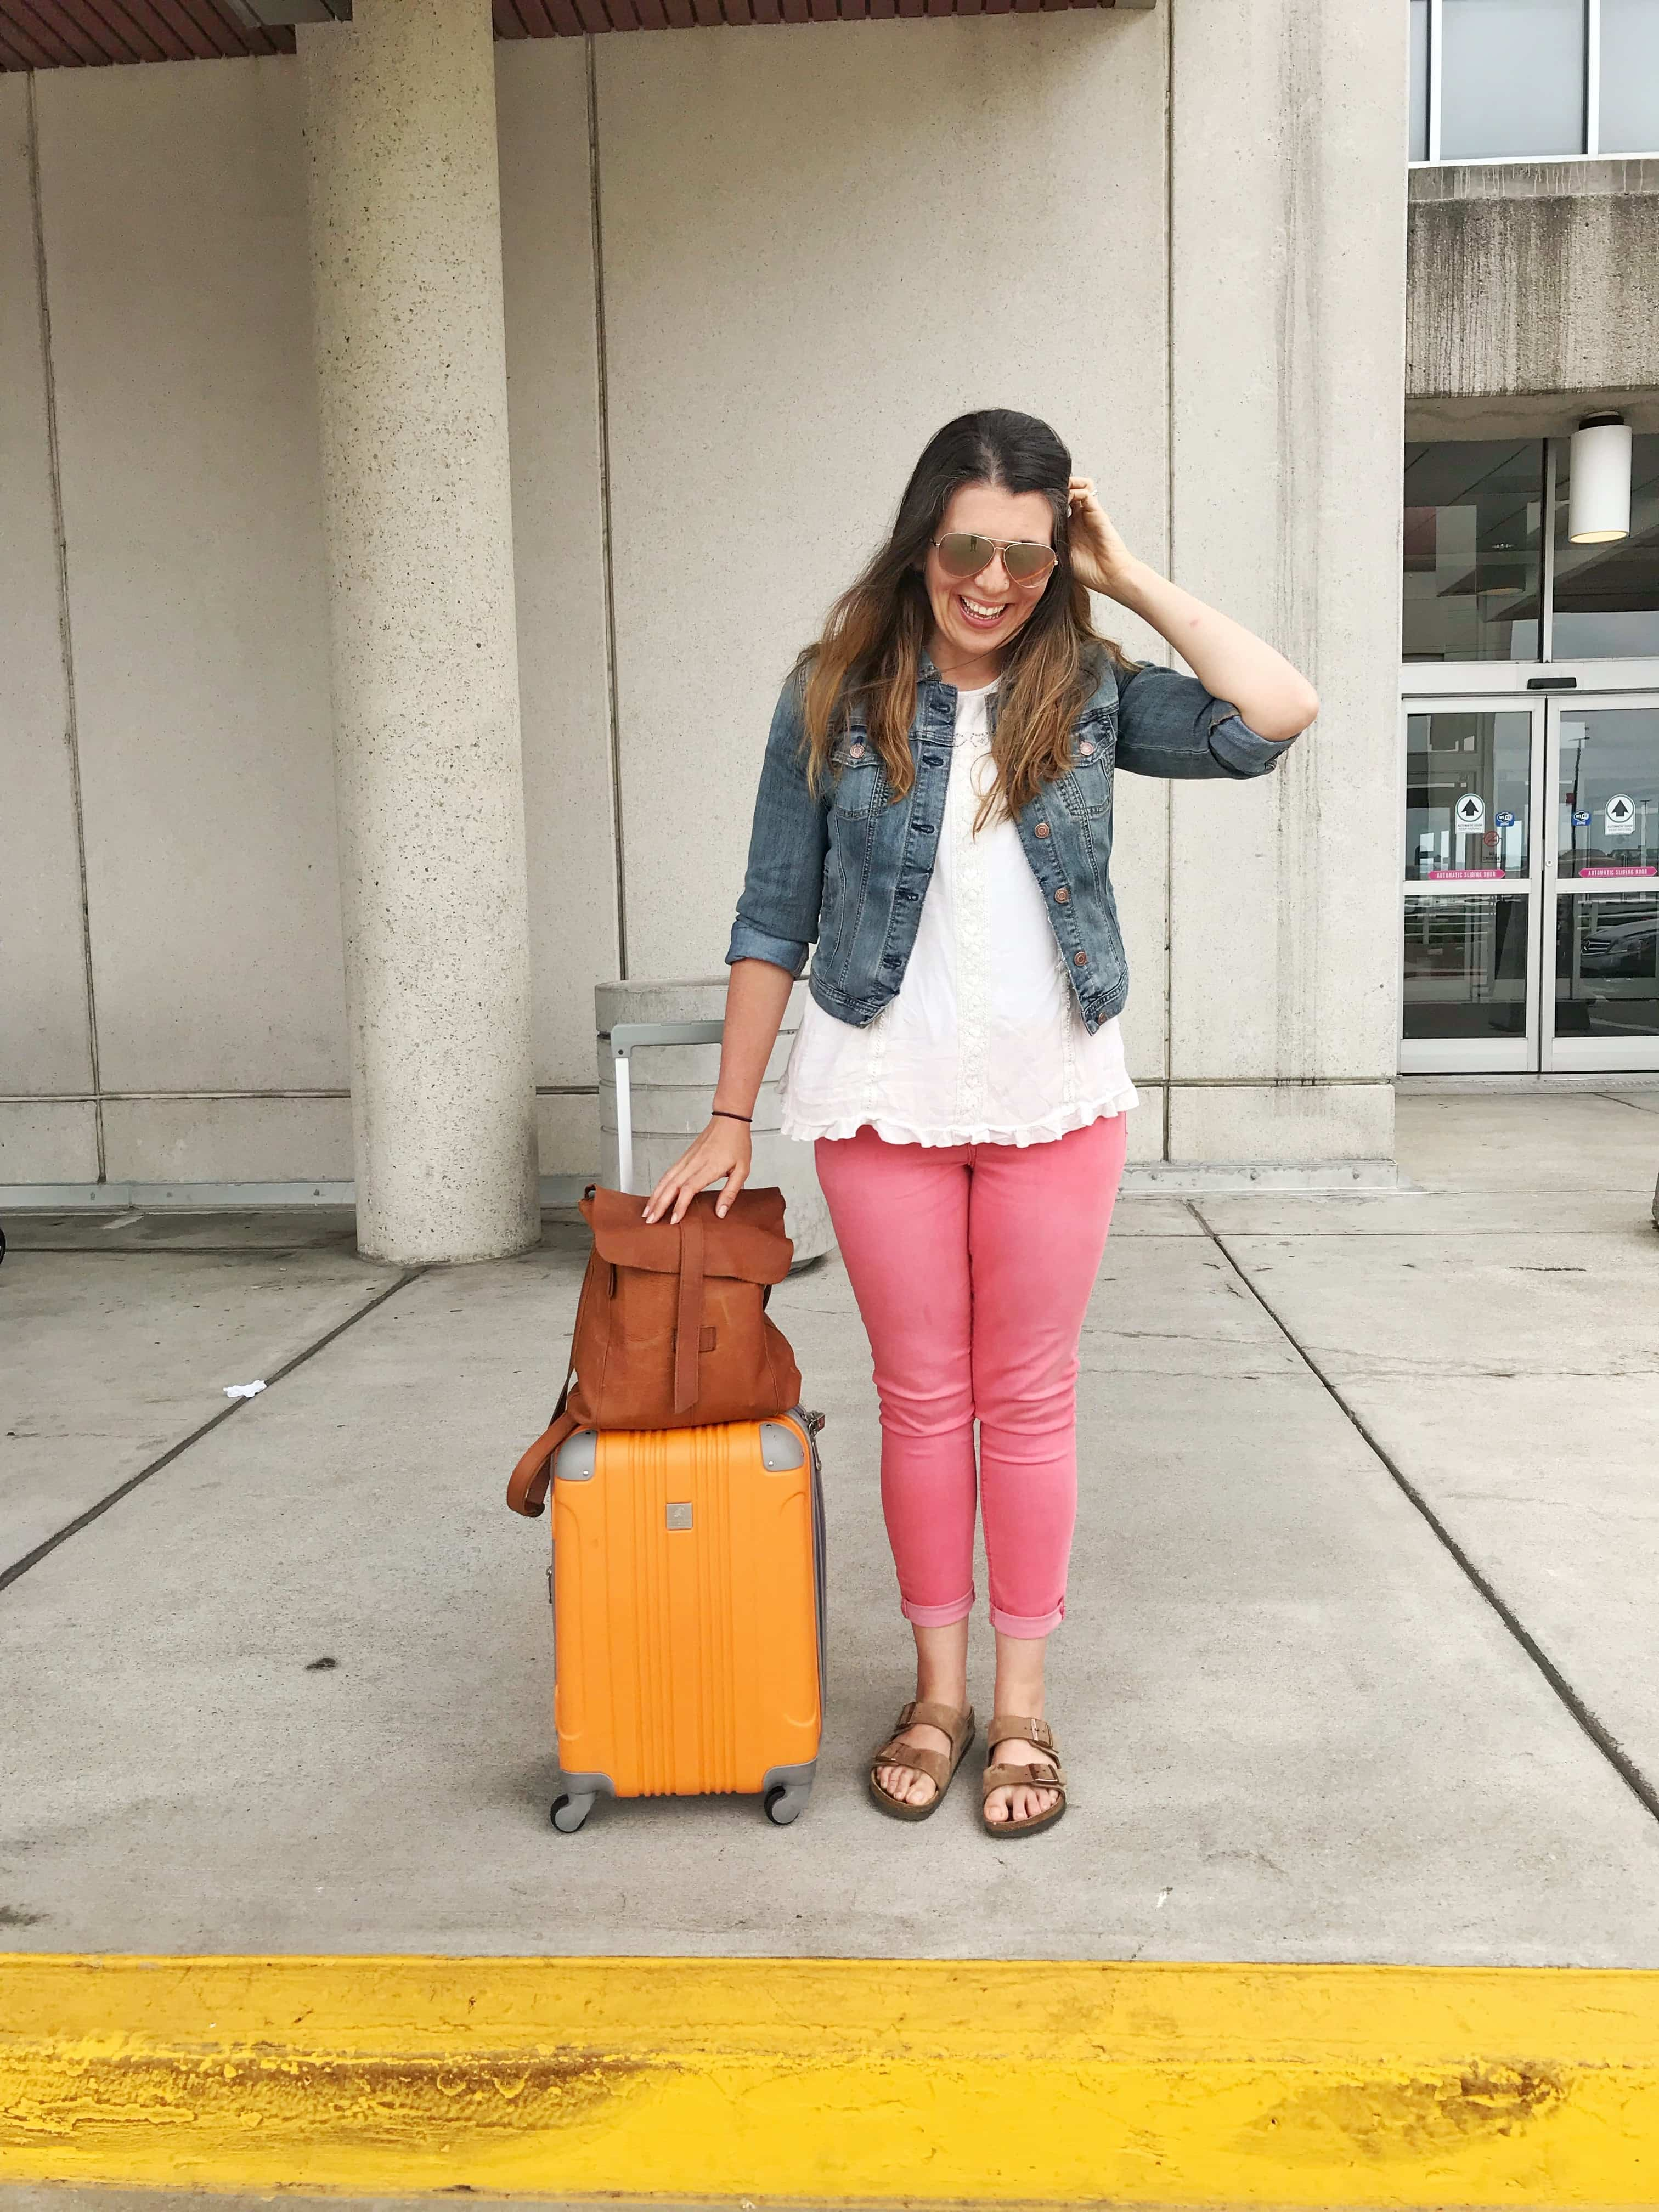 Woman in a denim jacket and pink pants standing next to a rolling suitcase and carry-on bag